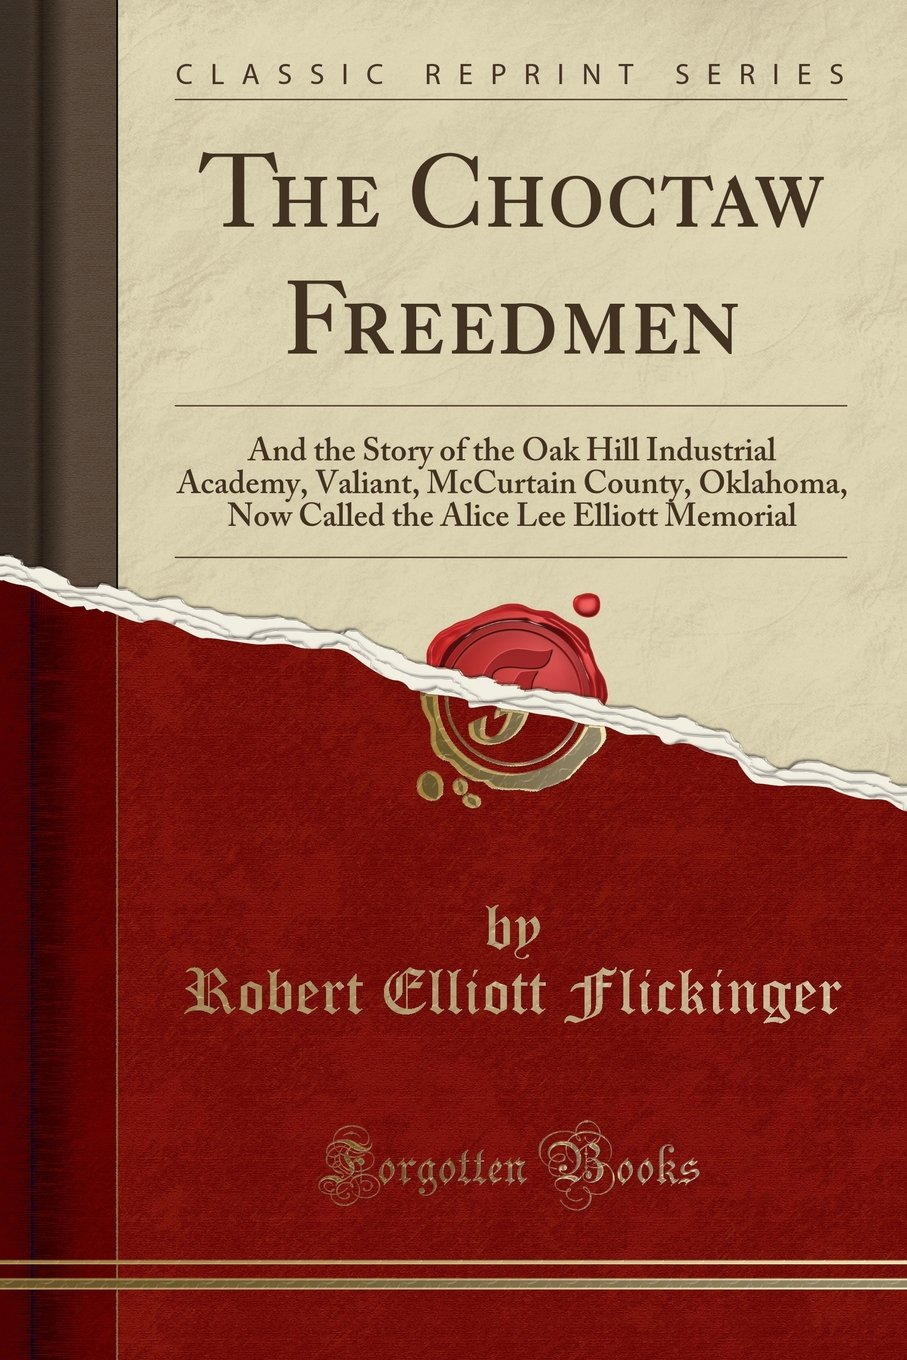 Read Online The Choctaw Freedmen and the Story of Oak Hill Industrial Academy: Now Called the Alice Lee Elliot Memorial (Classic Reprint) pdf epub